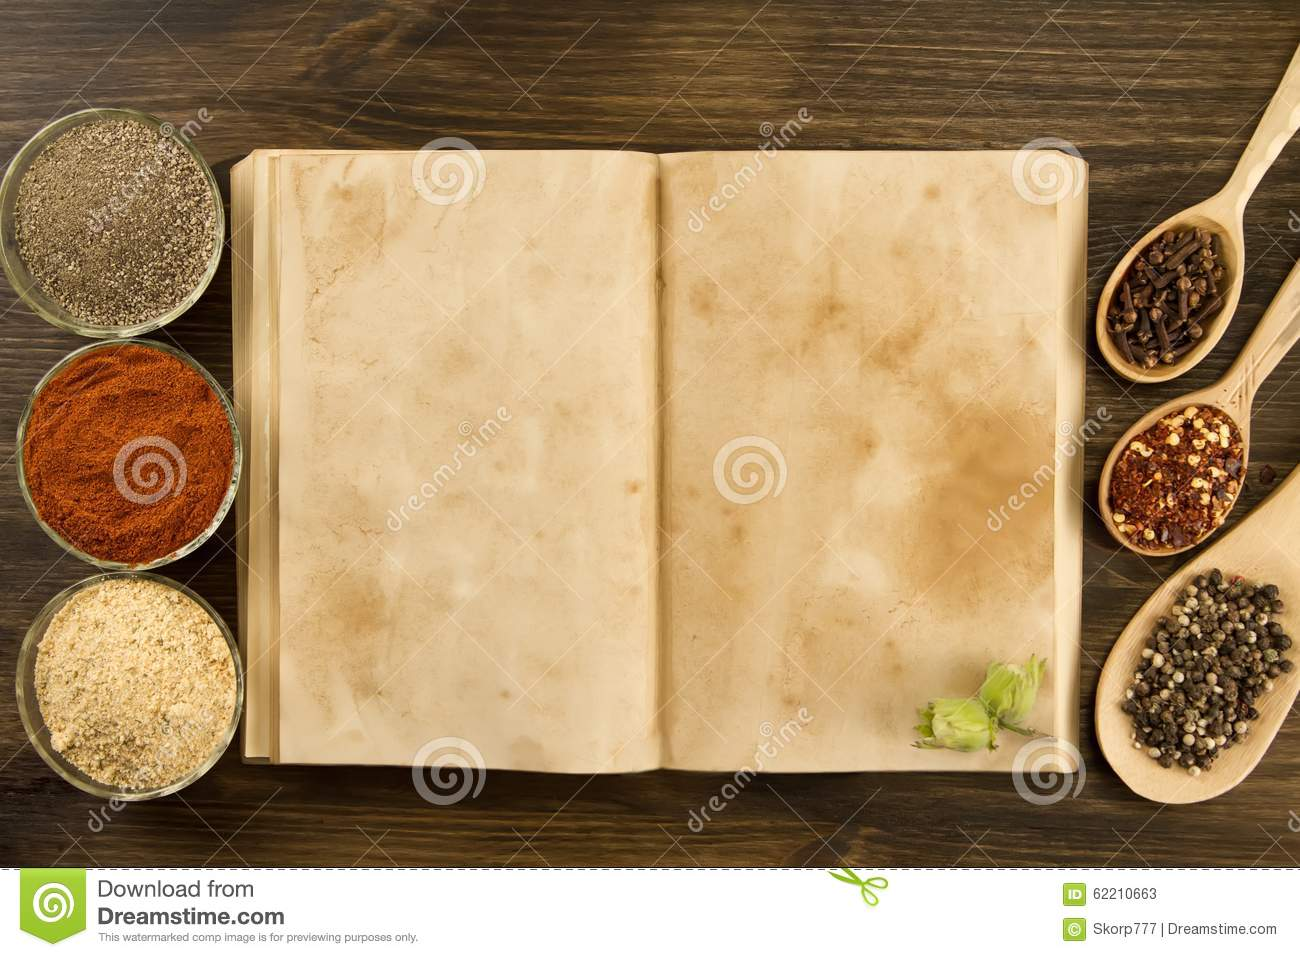 Open vintage book with spices on wooden background healthy download comp forumfinder Gallery